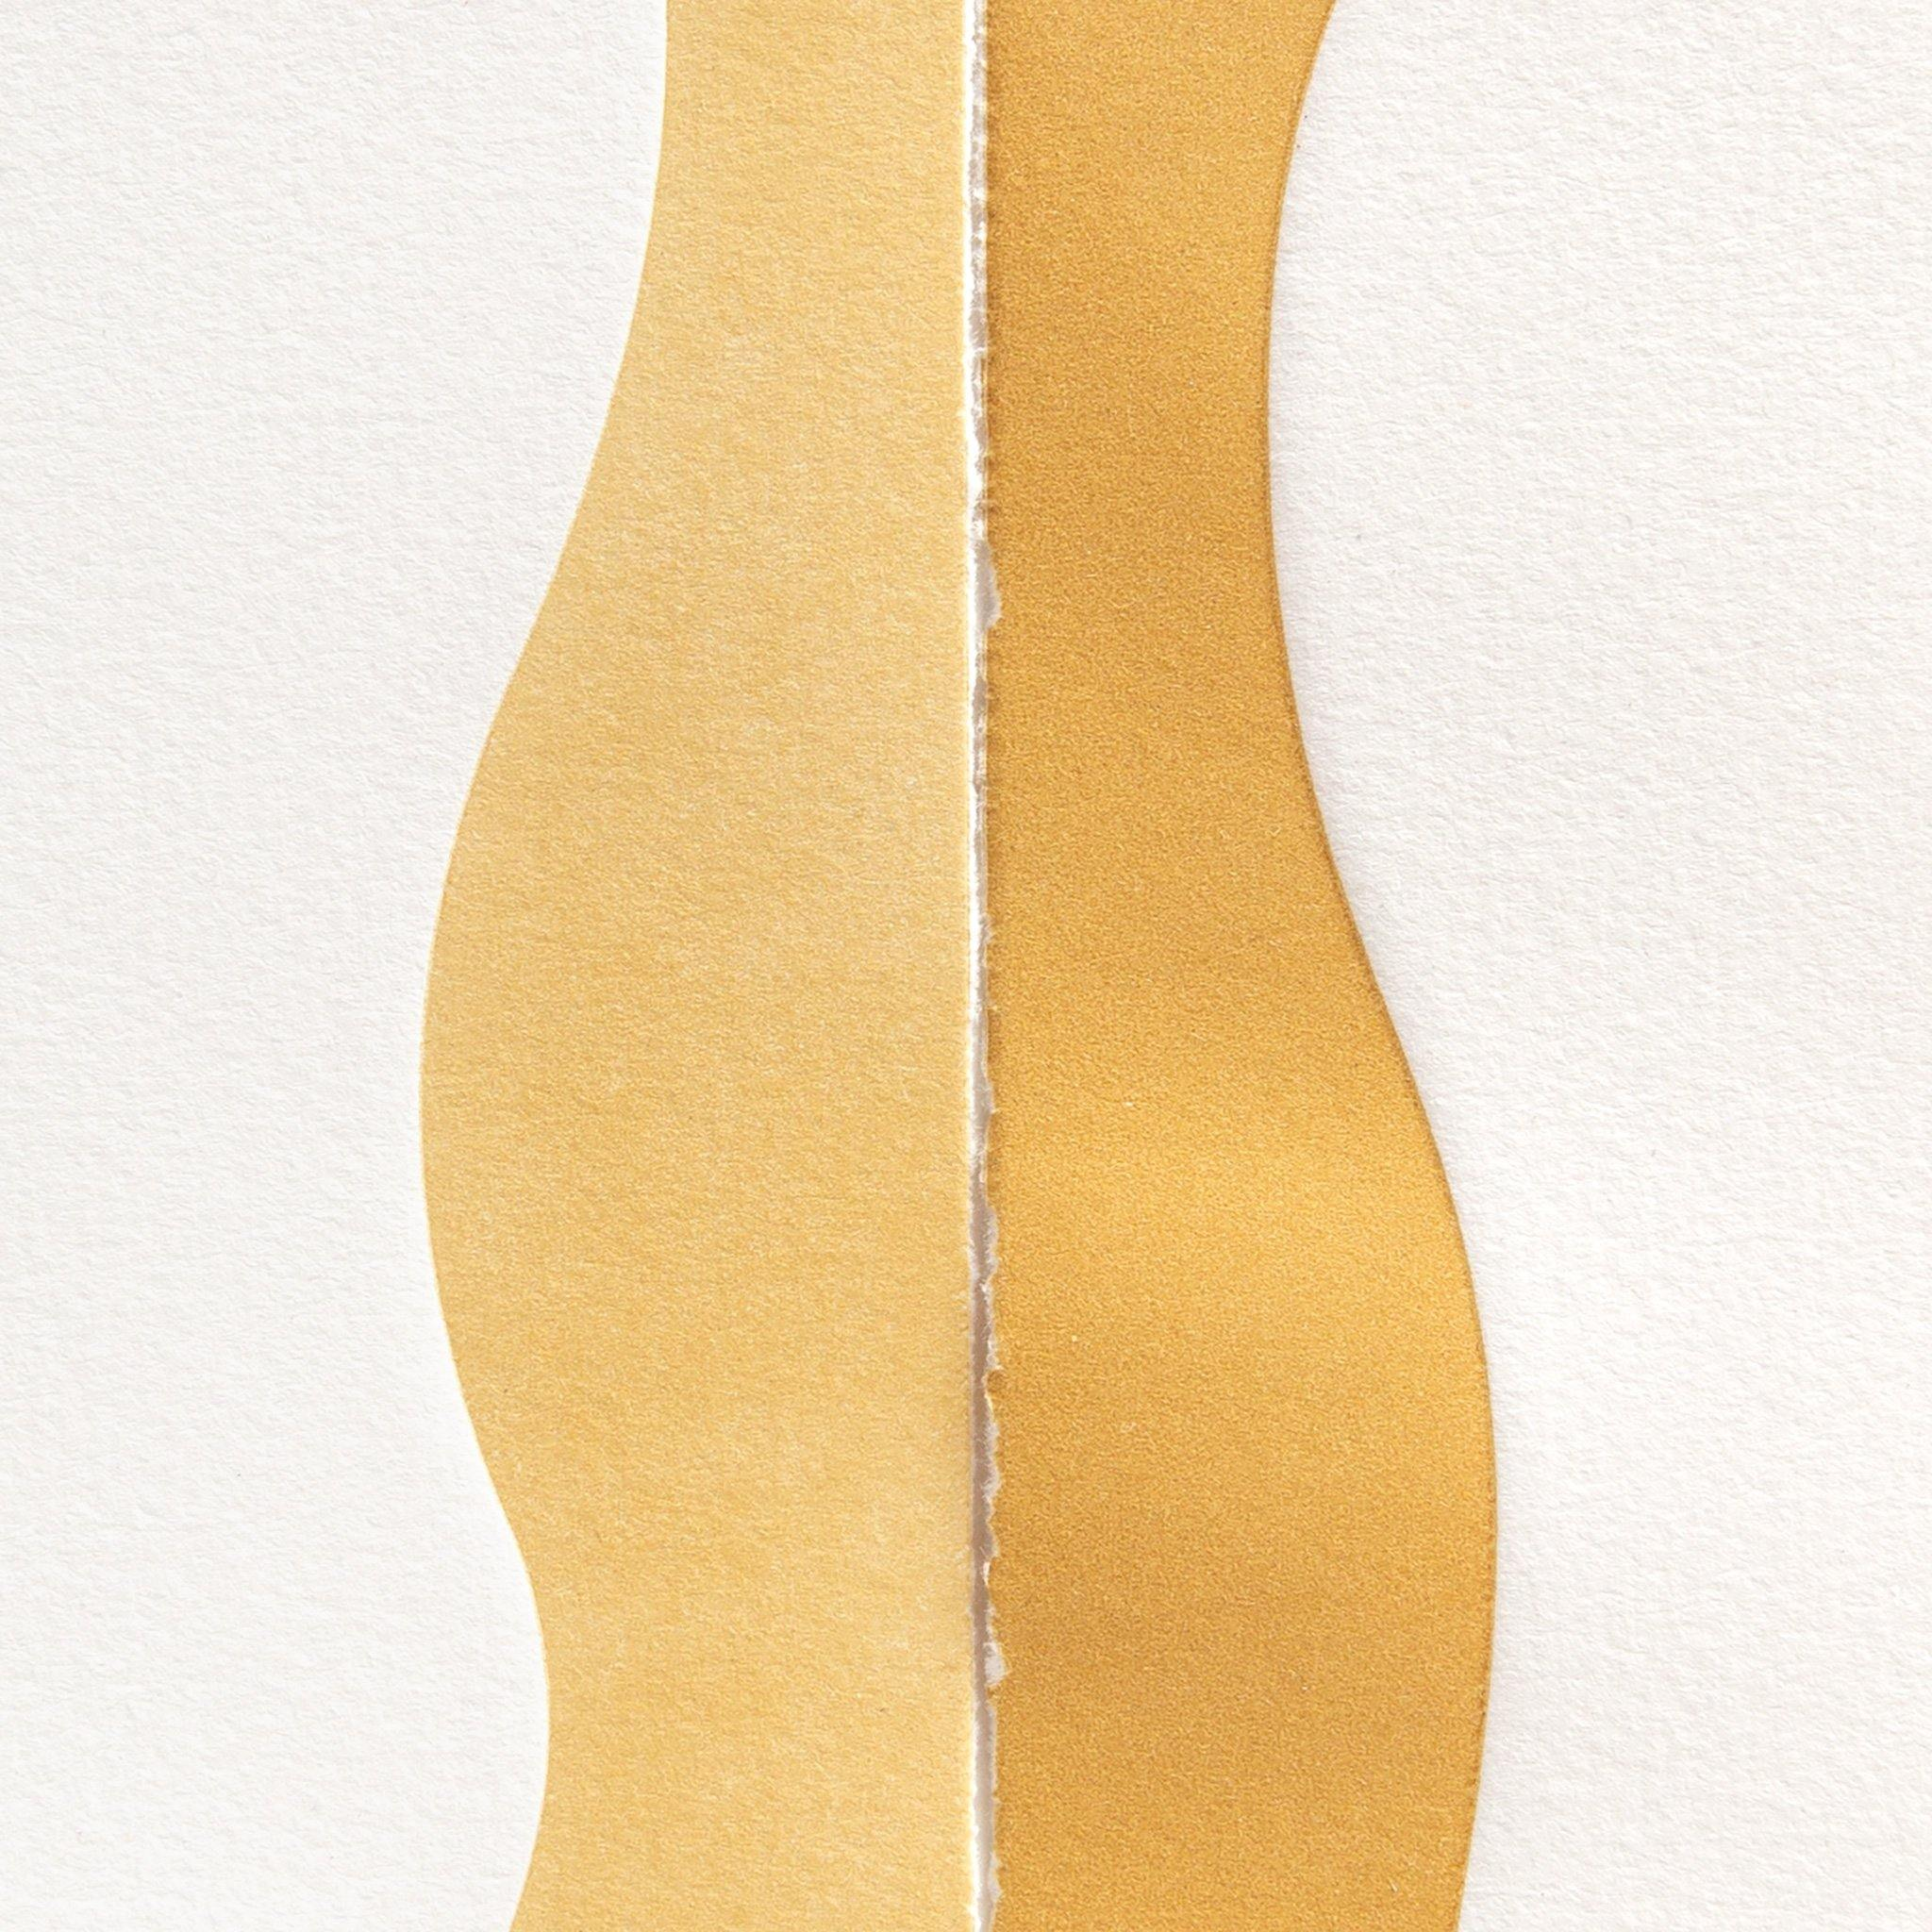 Hourglass, Original Work on Paper  by  Hourglass Tappan